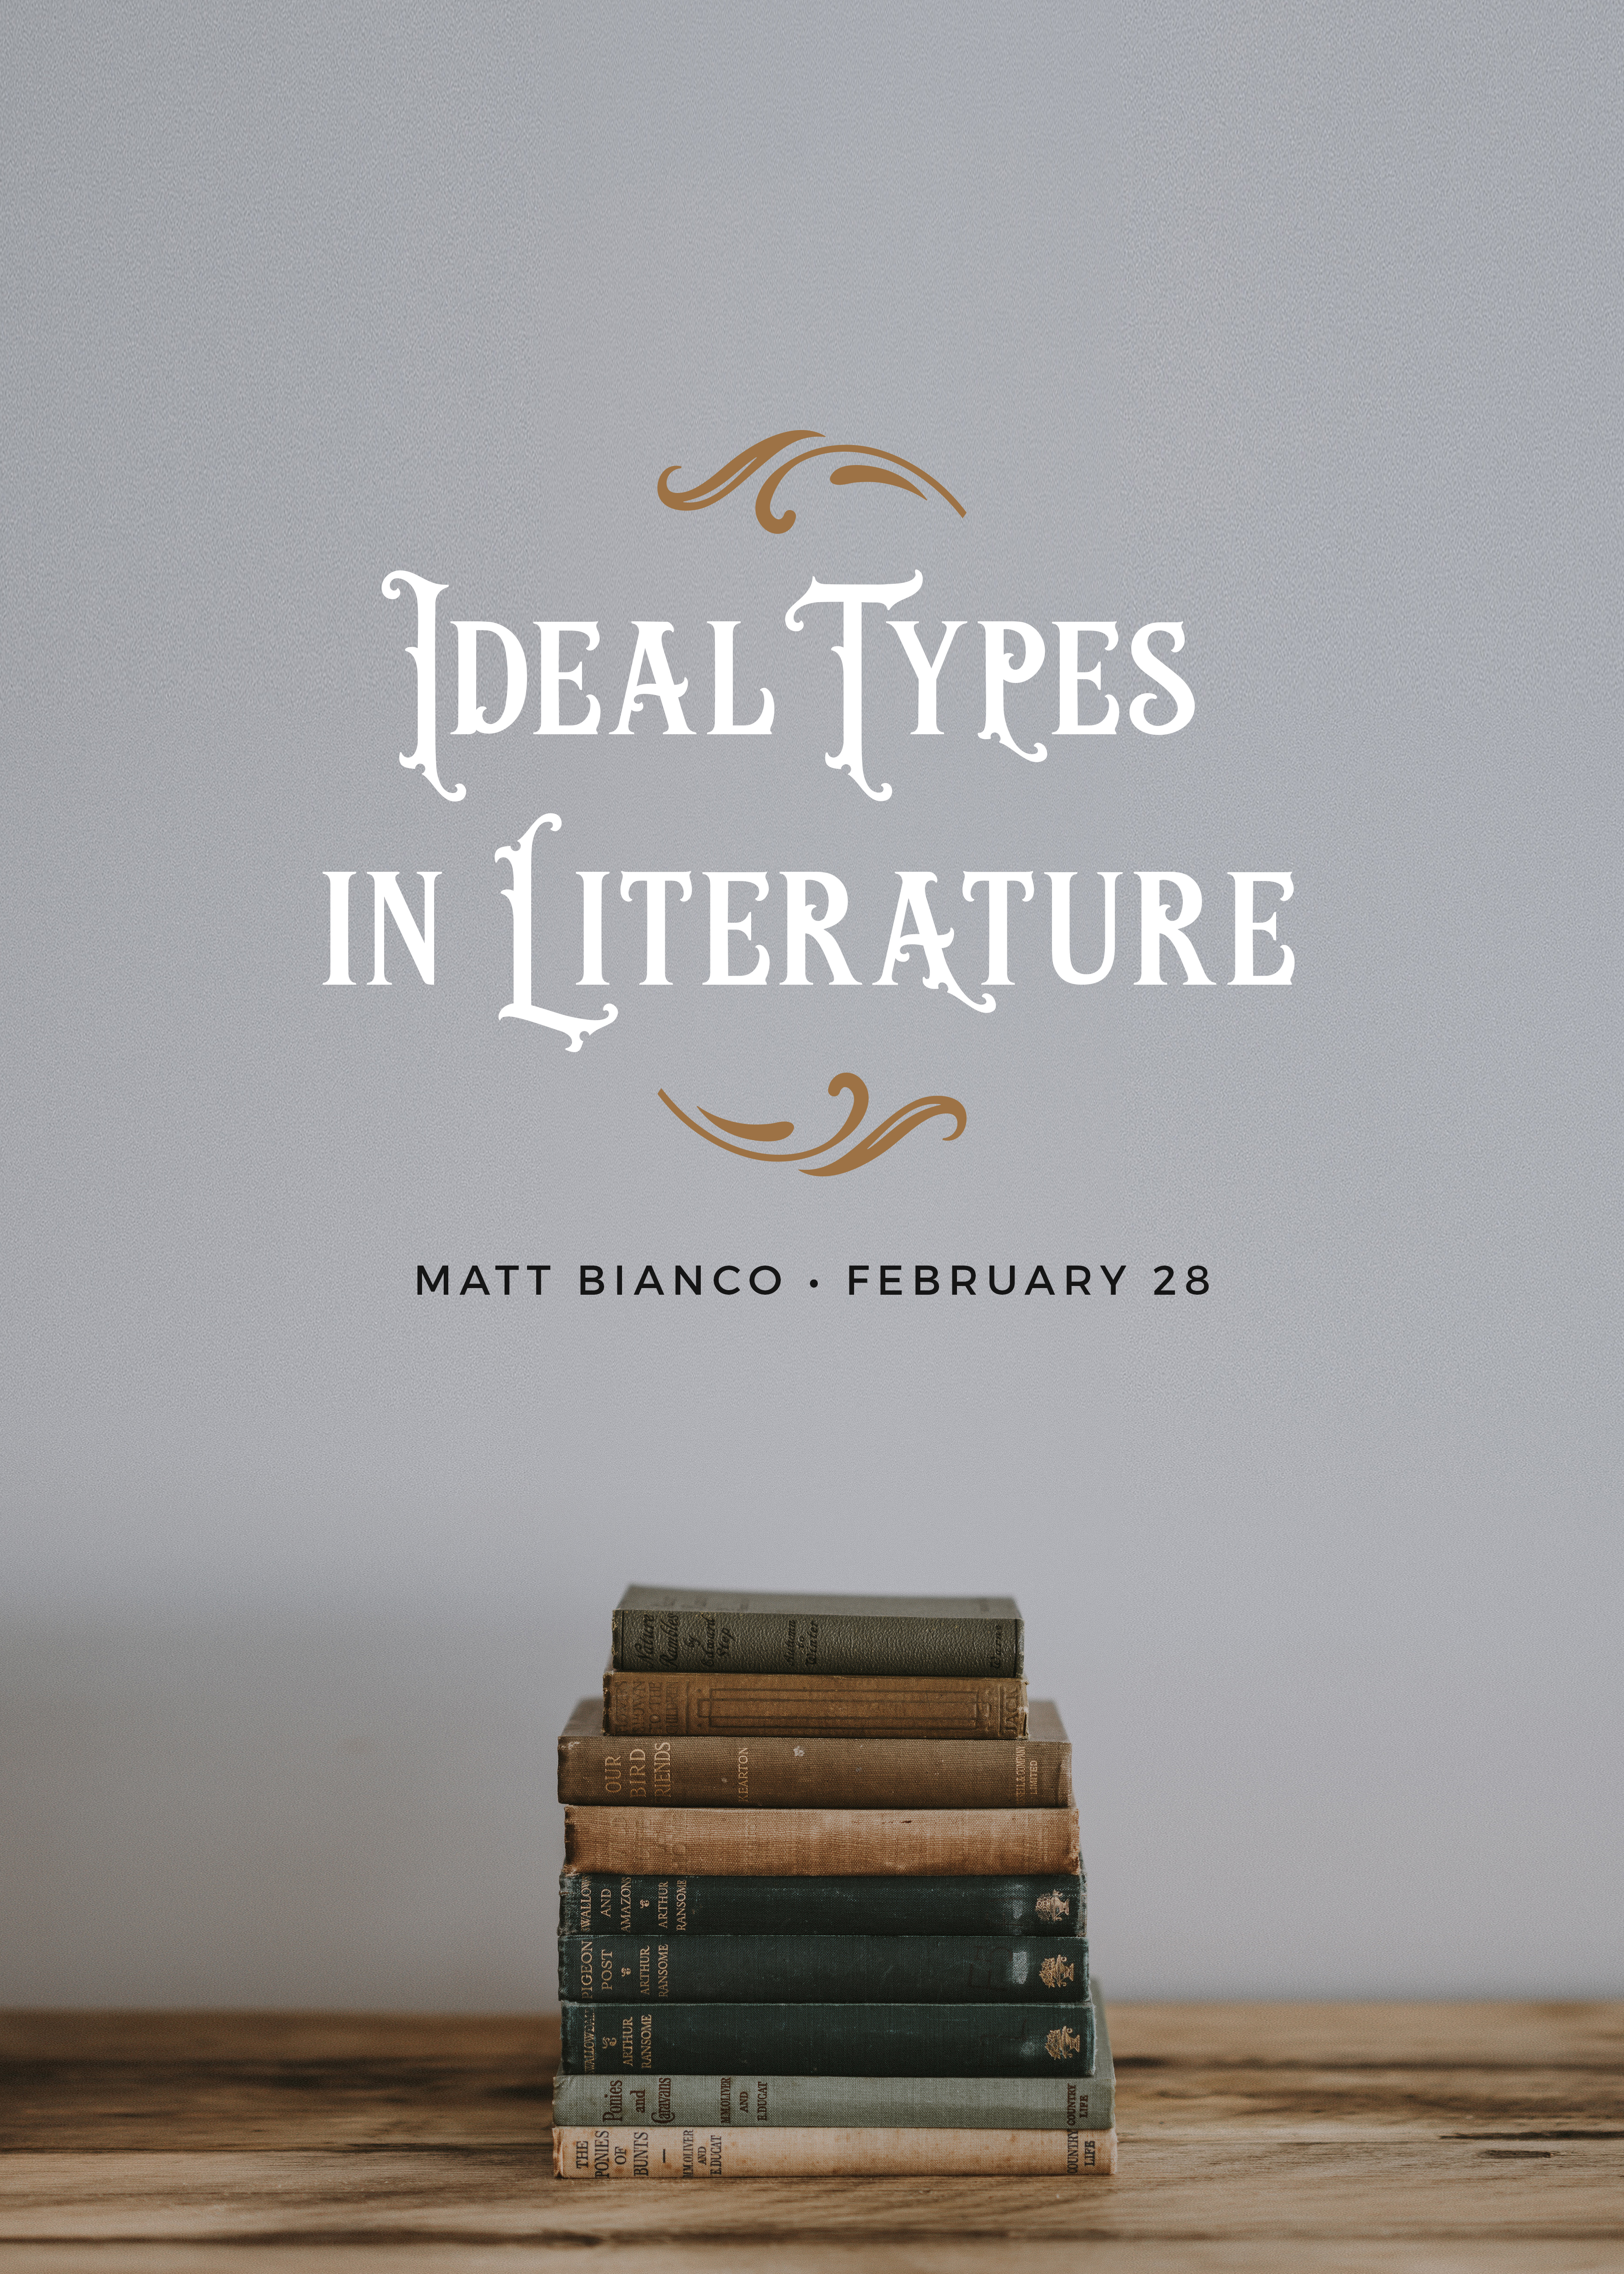 Ideal Types in Literature - Webinar Recording